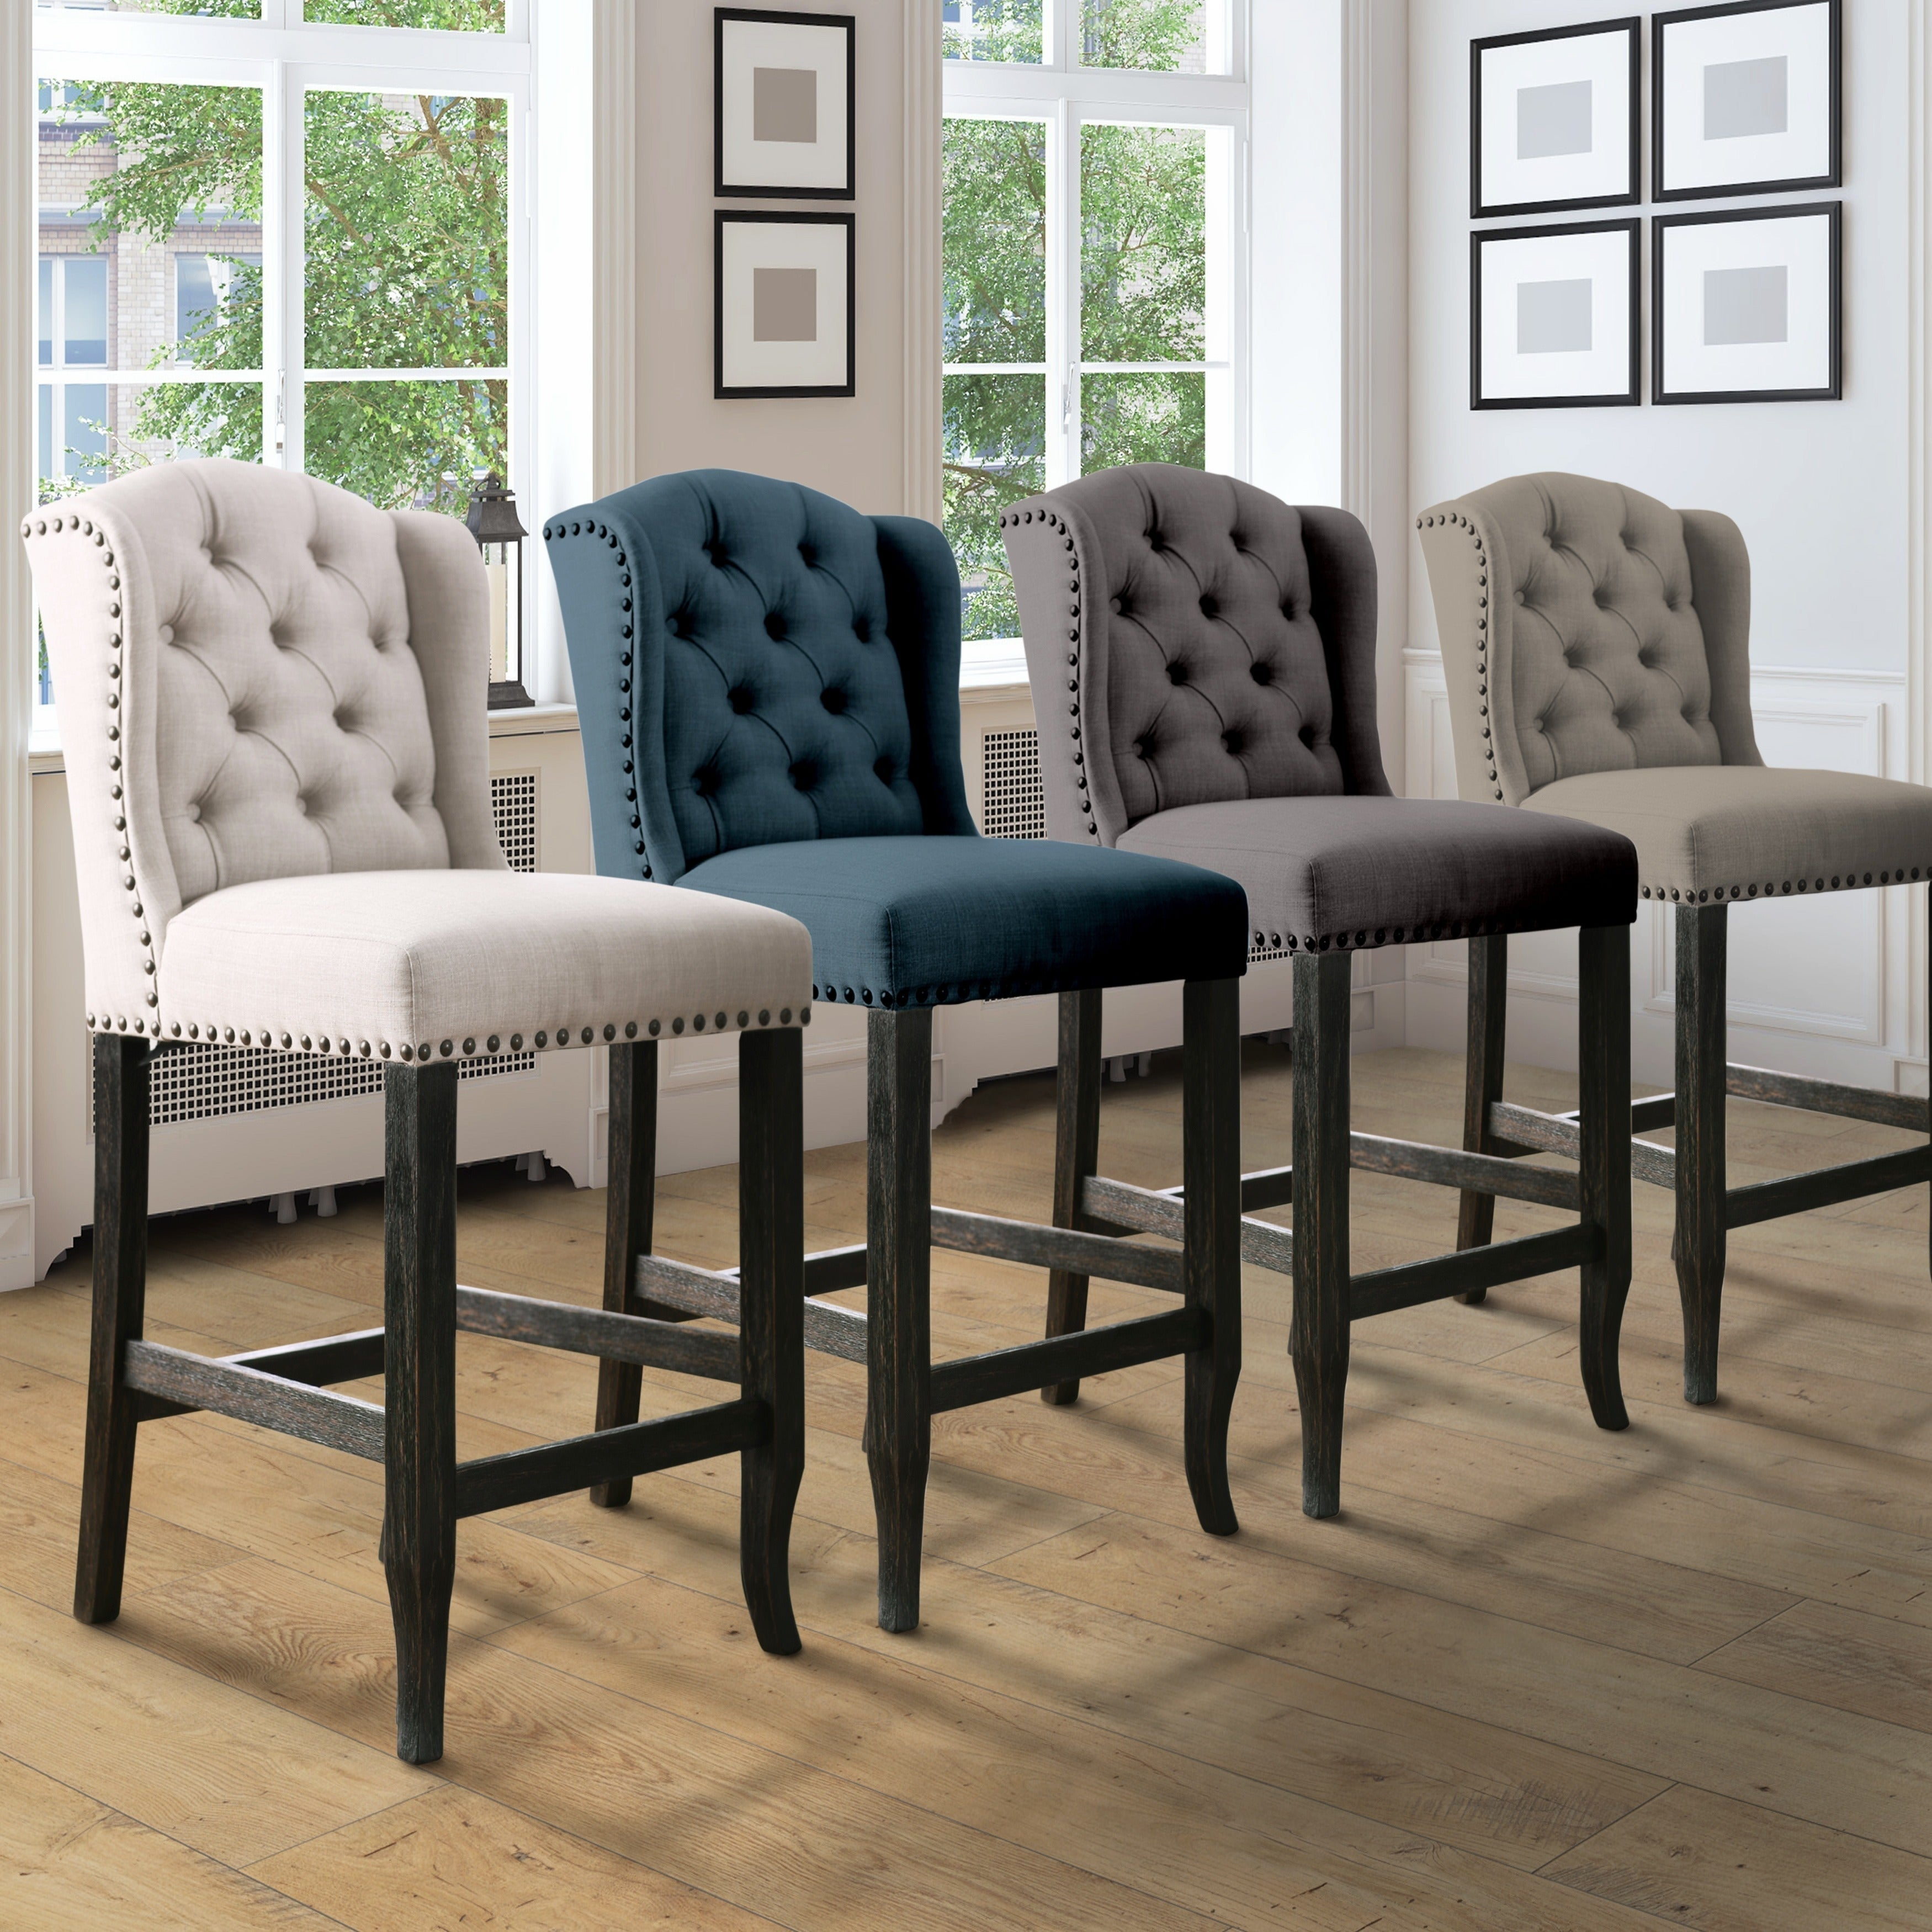 Furniture Of America Tays Counter Height Stool Set Of 2 On Sale Overstock 20370490